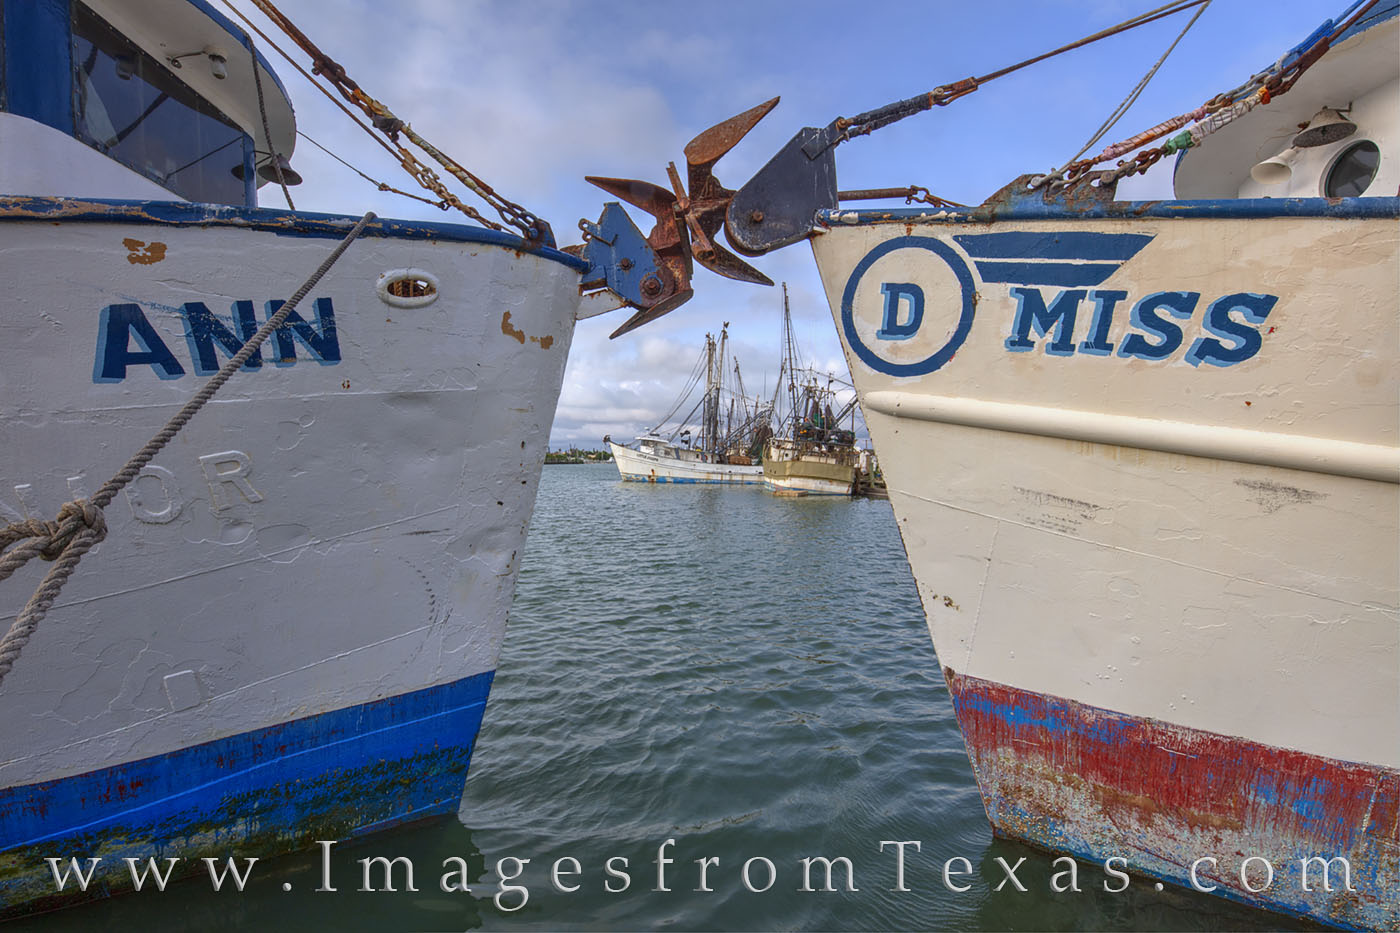 shrimp boats, port isabel, boats, south padre, texas coast, shrimpers, gulf of mexico, south bay, ocean, photo